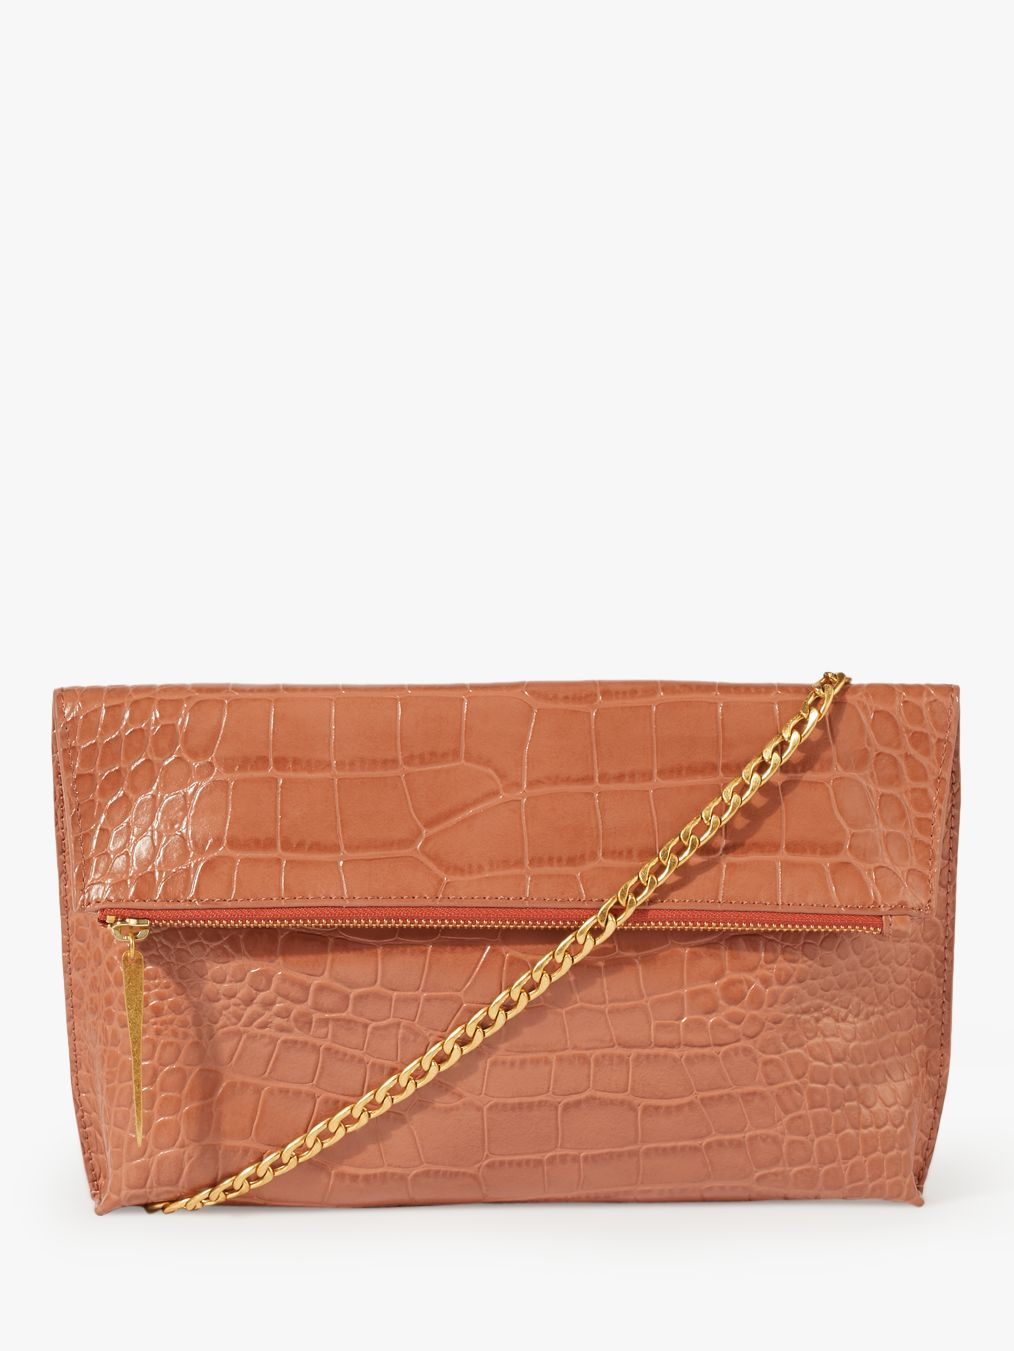 4c7cef002 Jigsaw Eve Croc Embossed Leather Foldover Clutch Bag, Terracotta at John  Lewis & Partners